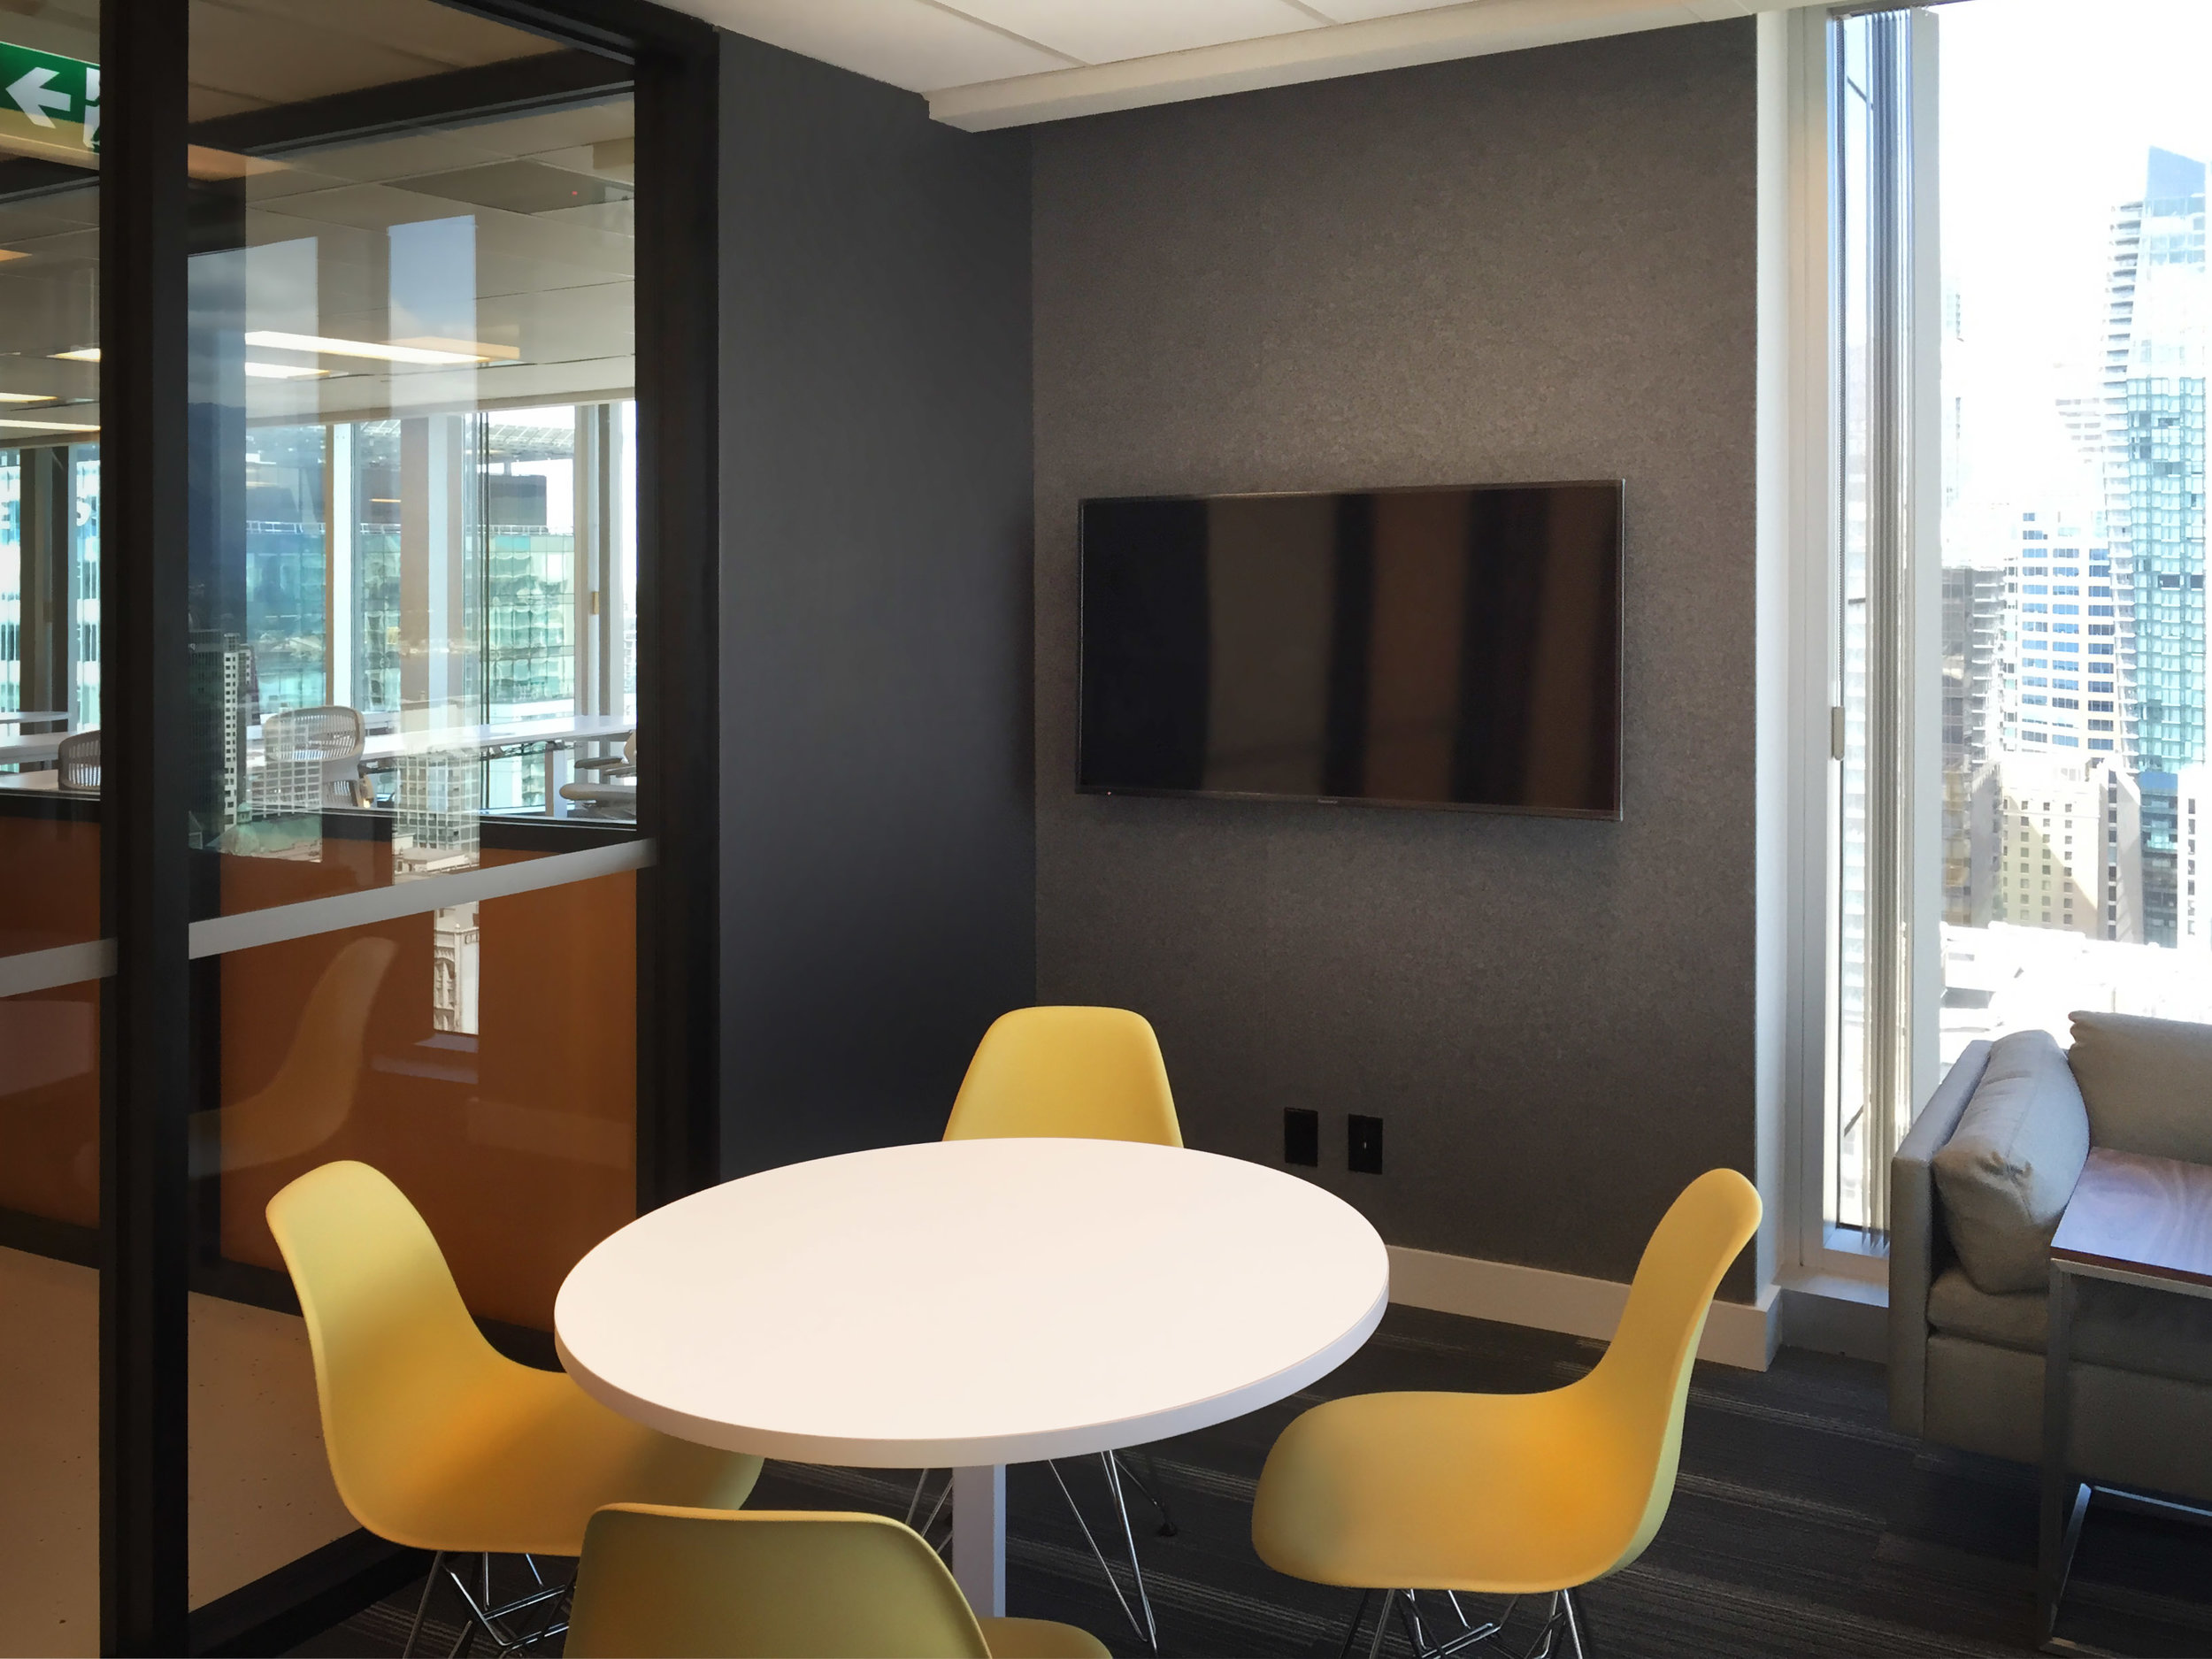 A smaller-sized, enclosed meeting room in the corner of the office, complete with 1960s inspired furniture. The wall behind the TV is clad in felt to help the acoustics in the room. Felt was employed throughout the space to help offset the acoustic reflectivity of the ample glazing.